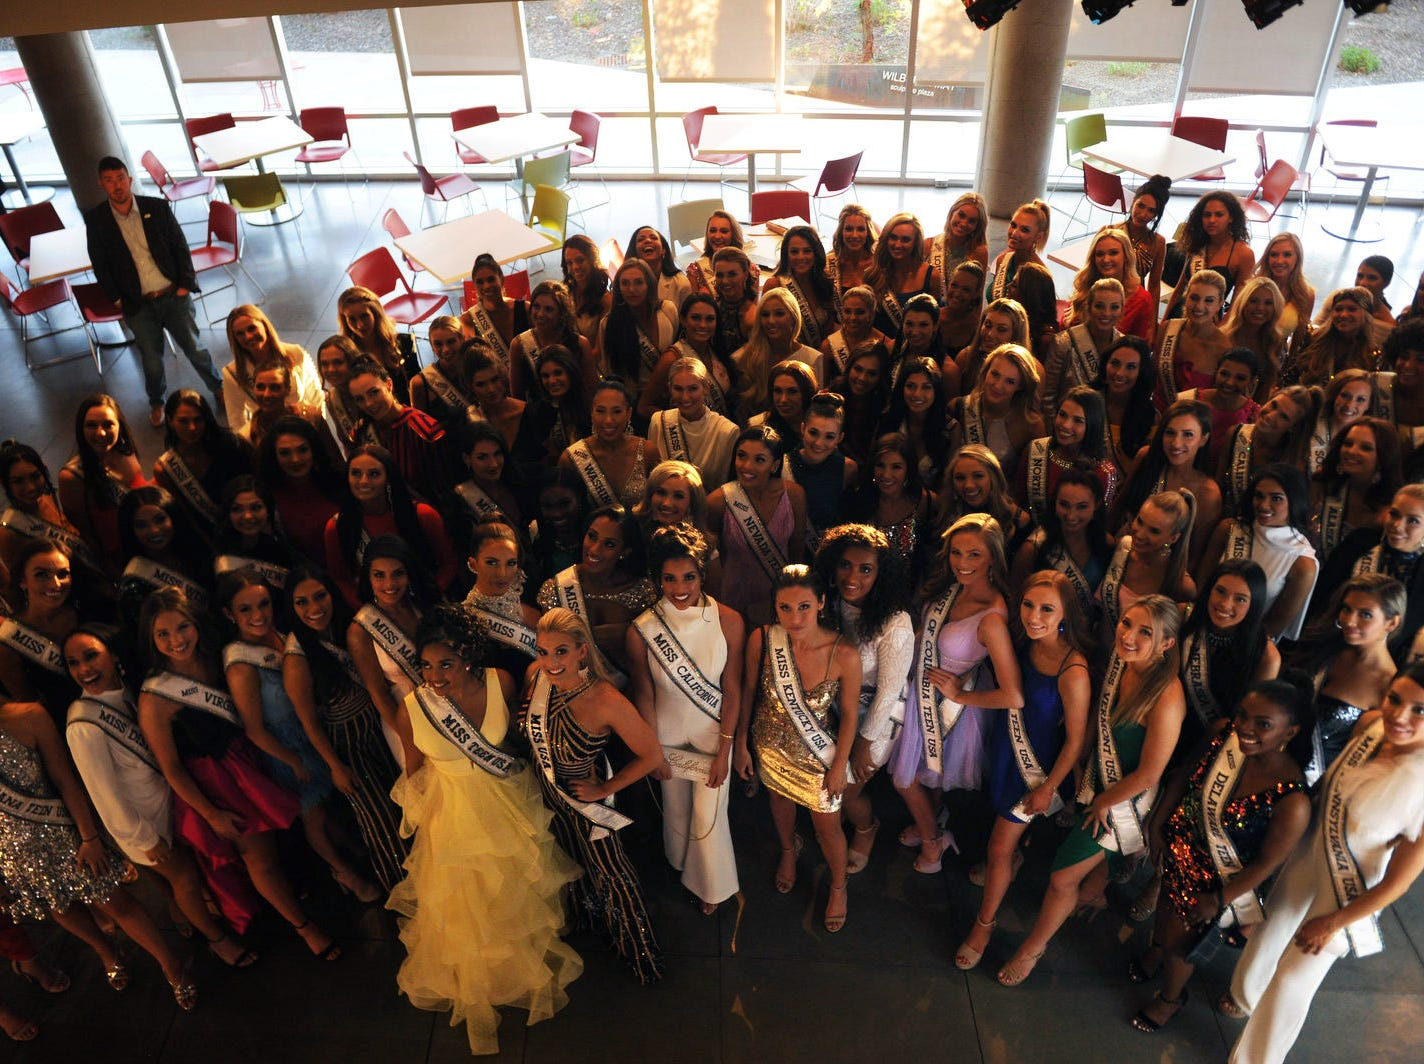 The official Miss USA and Miss Teen USA welcome event at the Nevada Museum of Art in Reno on April 24, 2019.